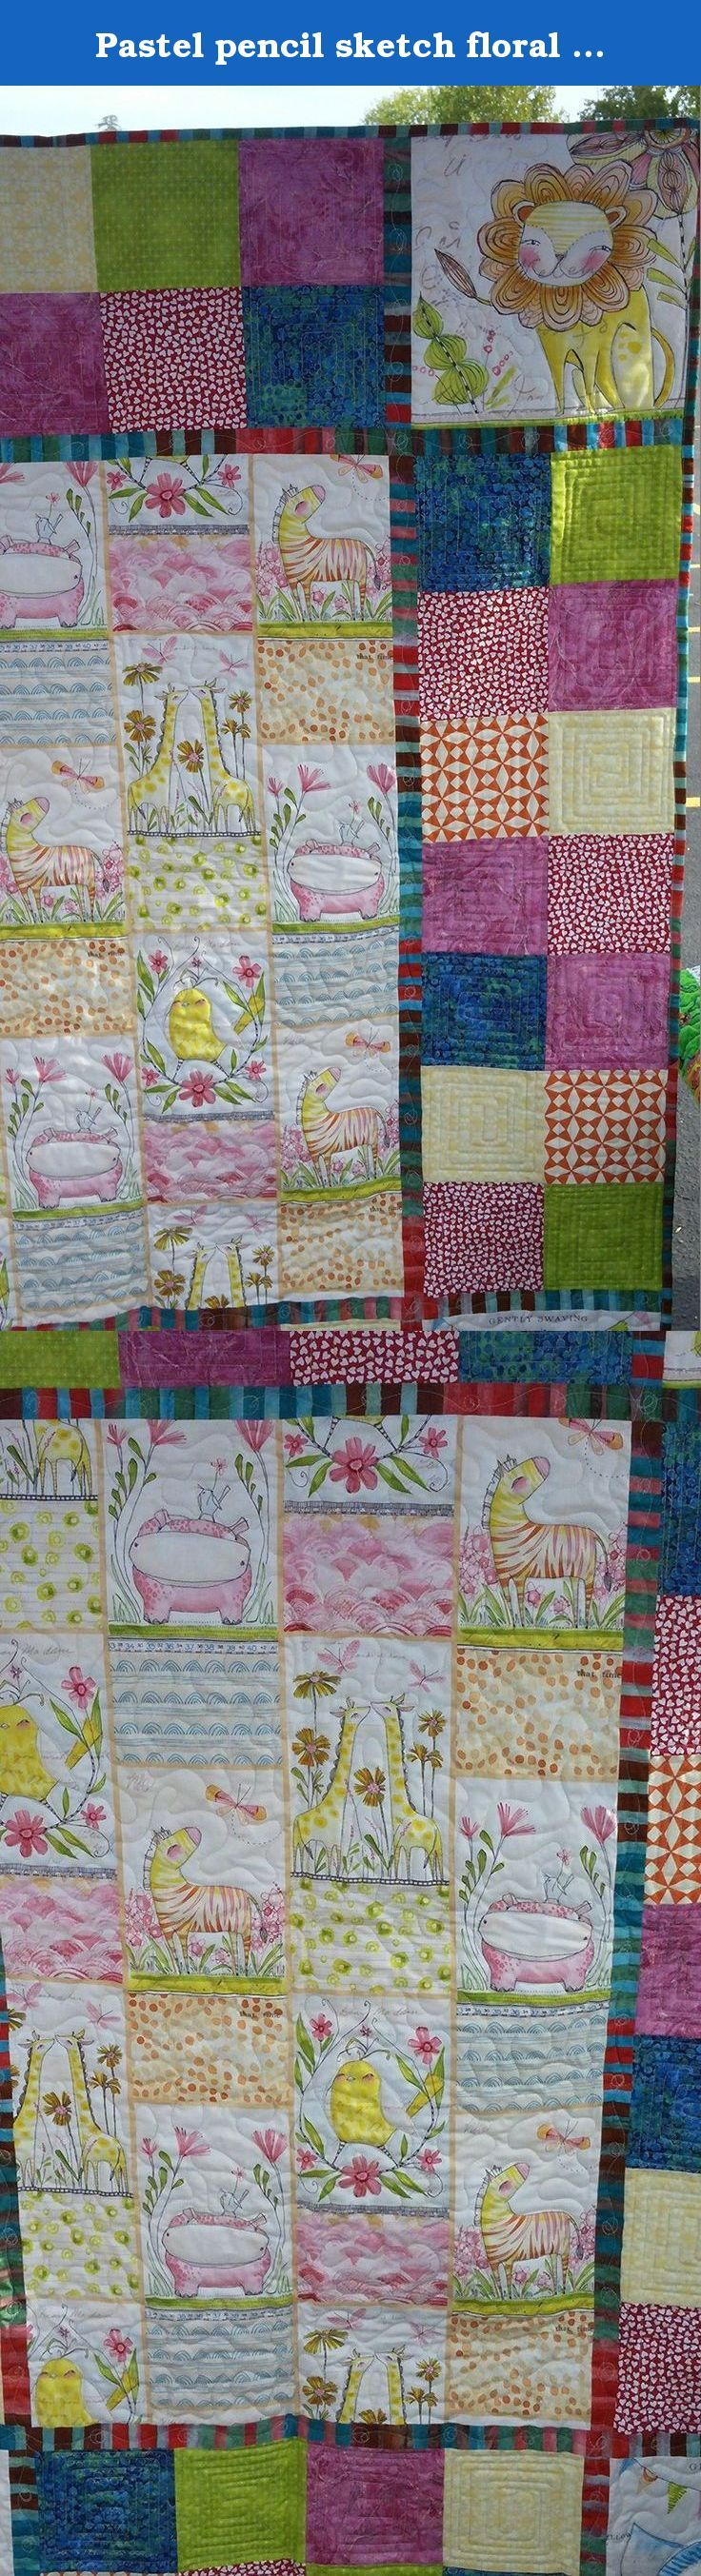 """Pastel pencil sketch floral and animal quilt - girls handmade blanket - white, pink, blue, green - 42""""x57"""" one of a kind. Do you have a new baby girl on the way? Maybe a little girl than needs a new cuddle blanket. This is the perfect gift to welcome a new baby or surprise your princess. I know your little girl with fall in love with the pencil sketched animals, their expressive faces and the flowers around them. I did while at the fabric store and just couldn't pass it up. As this quilt…"""